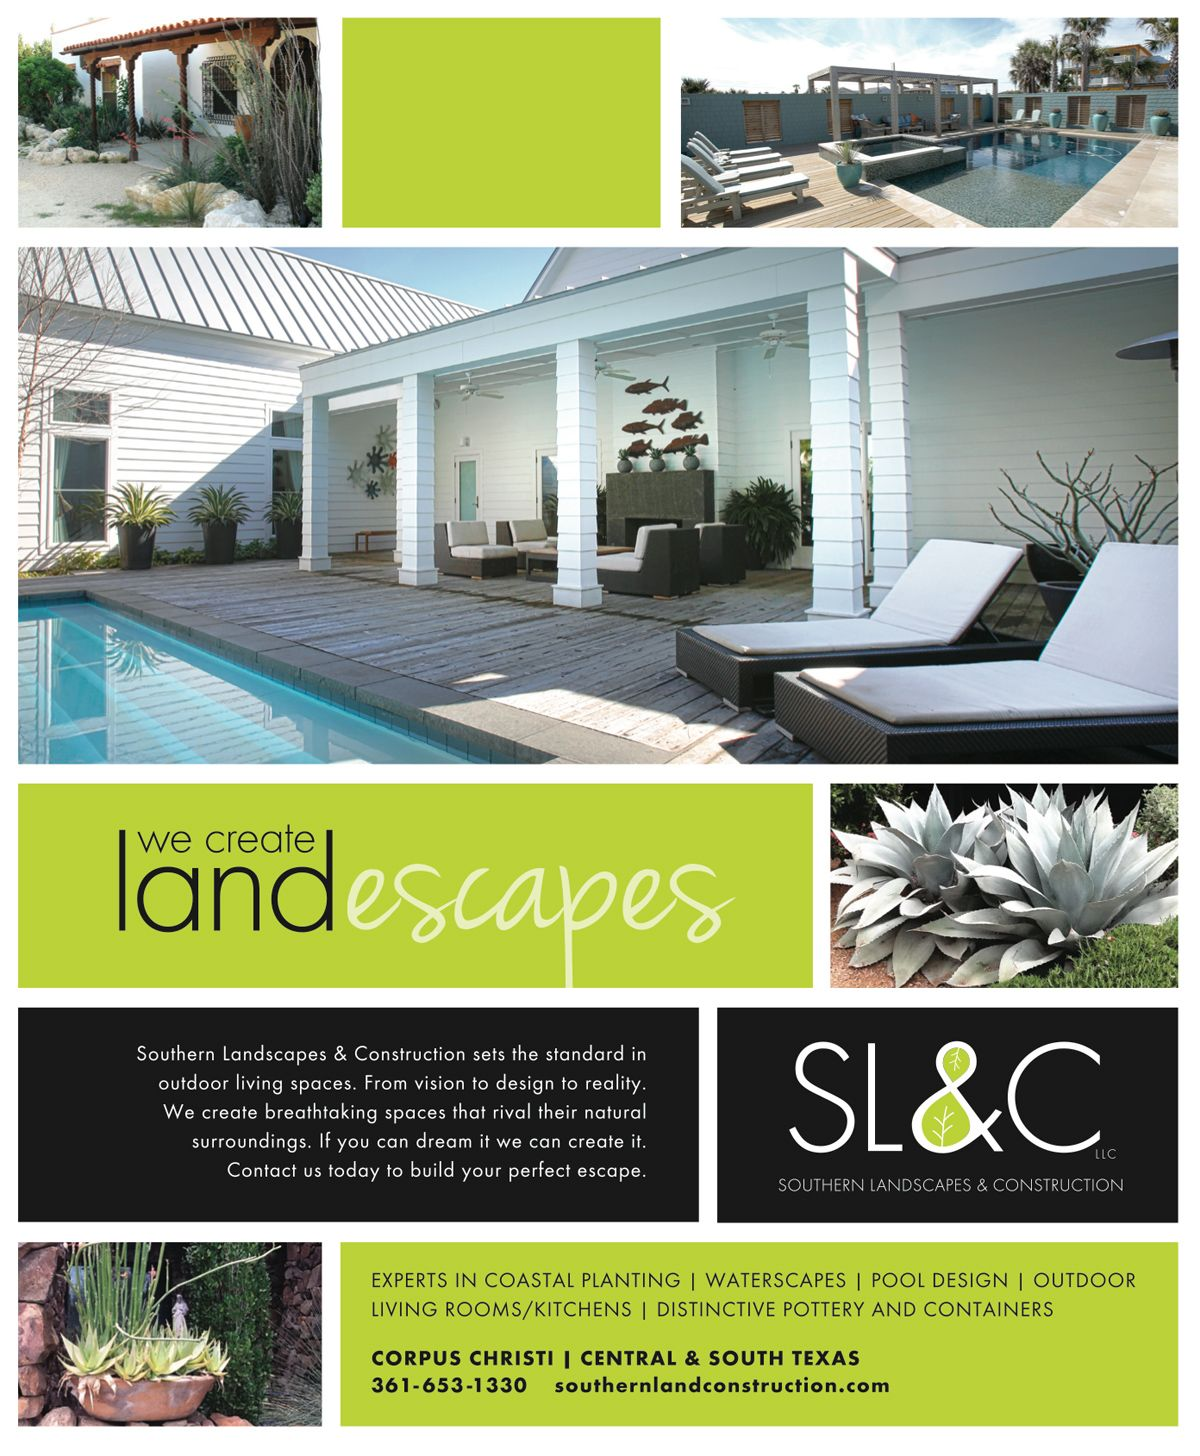 Southern Landscapes & Construction in Corpus Christi, TX - Southern Landscapes & Construction In Corpus Christi, TX